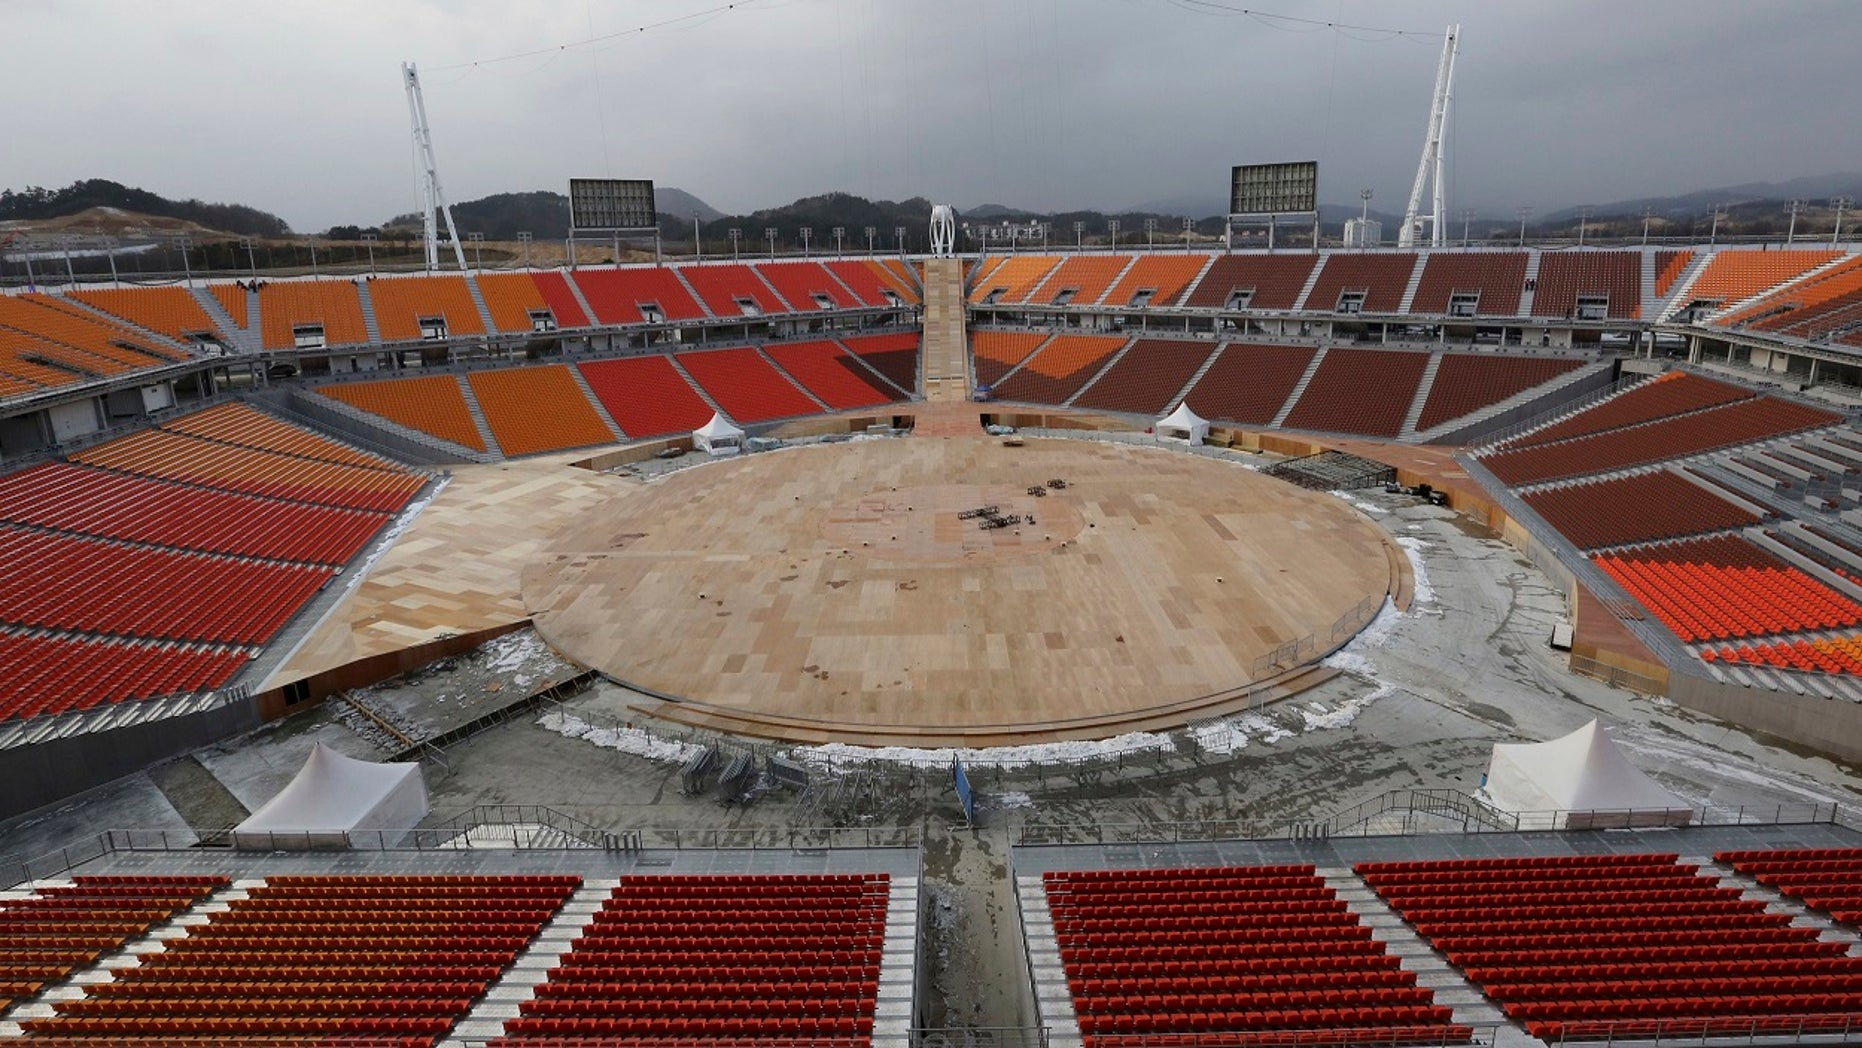 The Pyeongchang Olympic Stadium is an open-air stadium. A request to add a roof was denied.